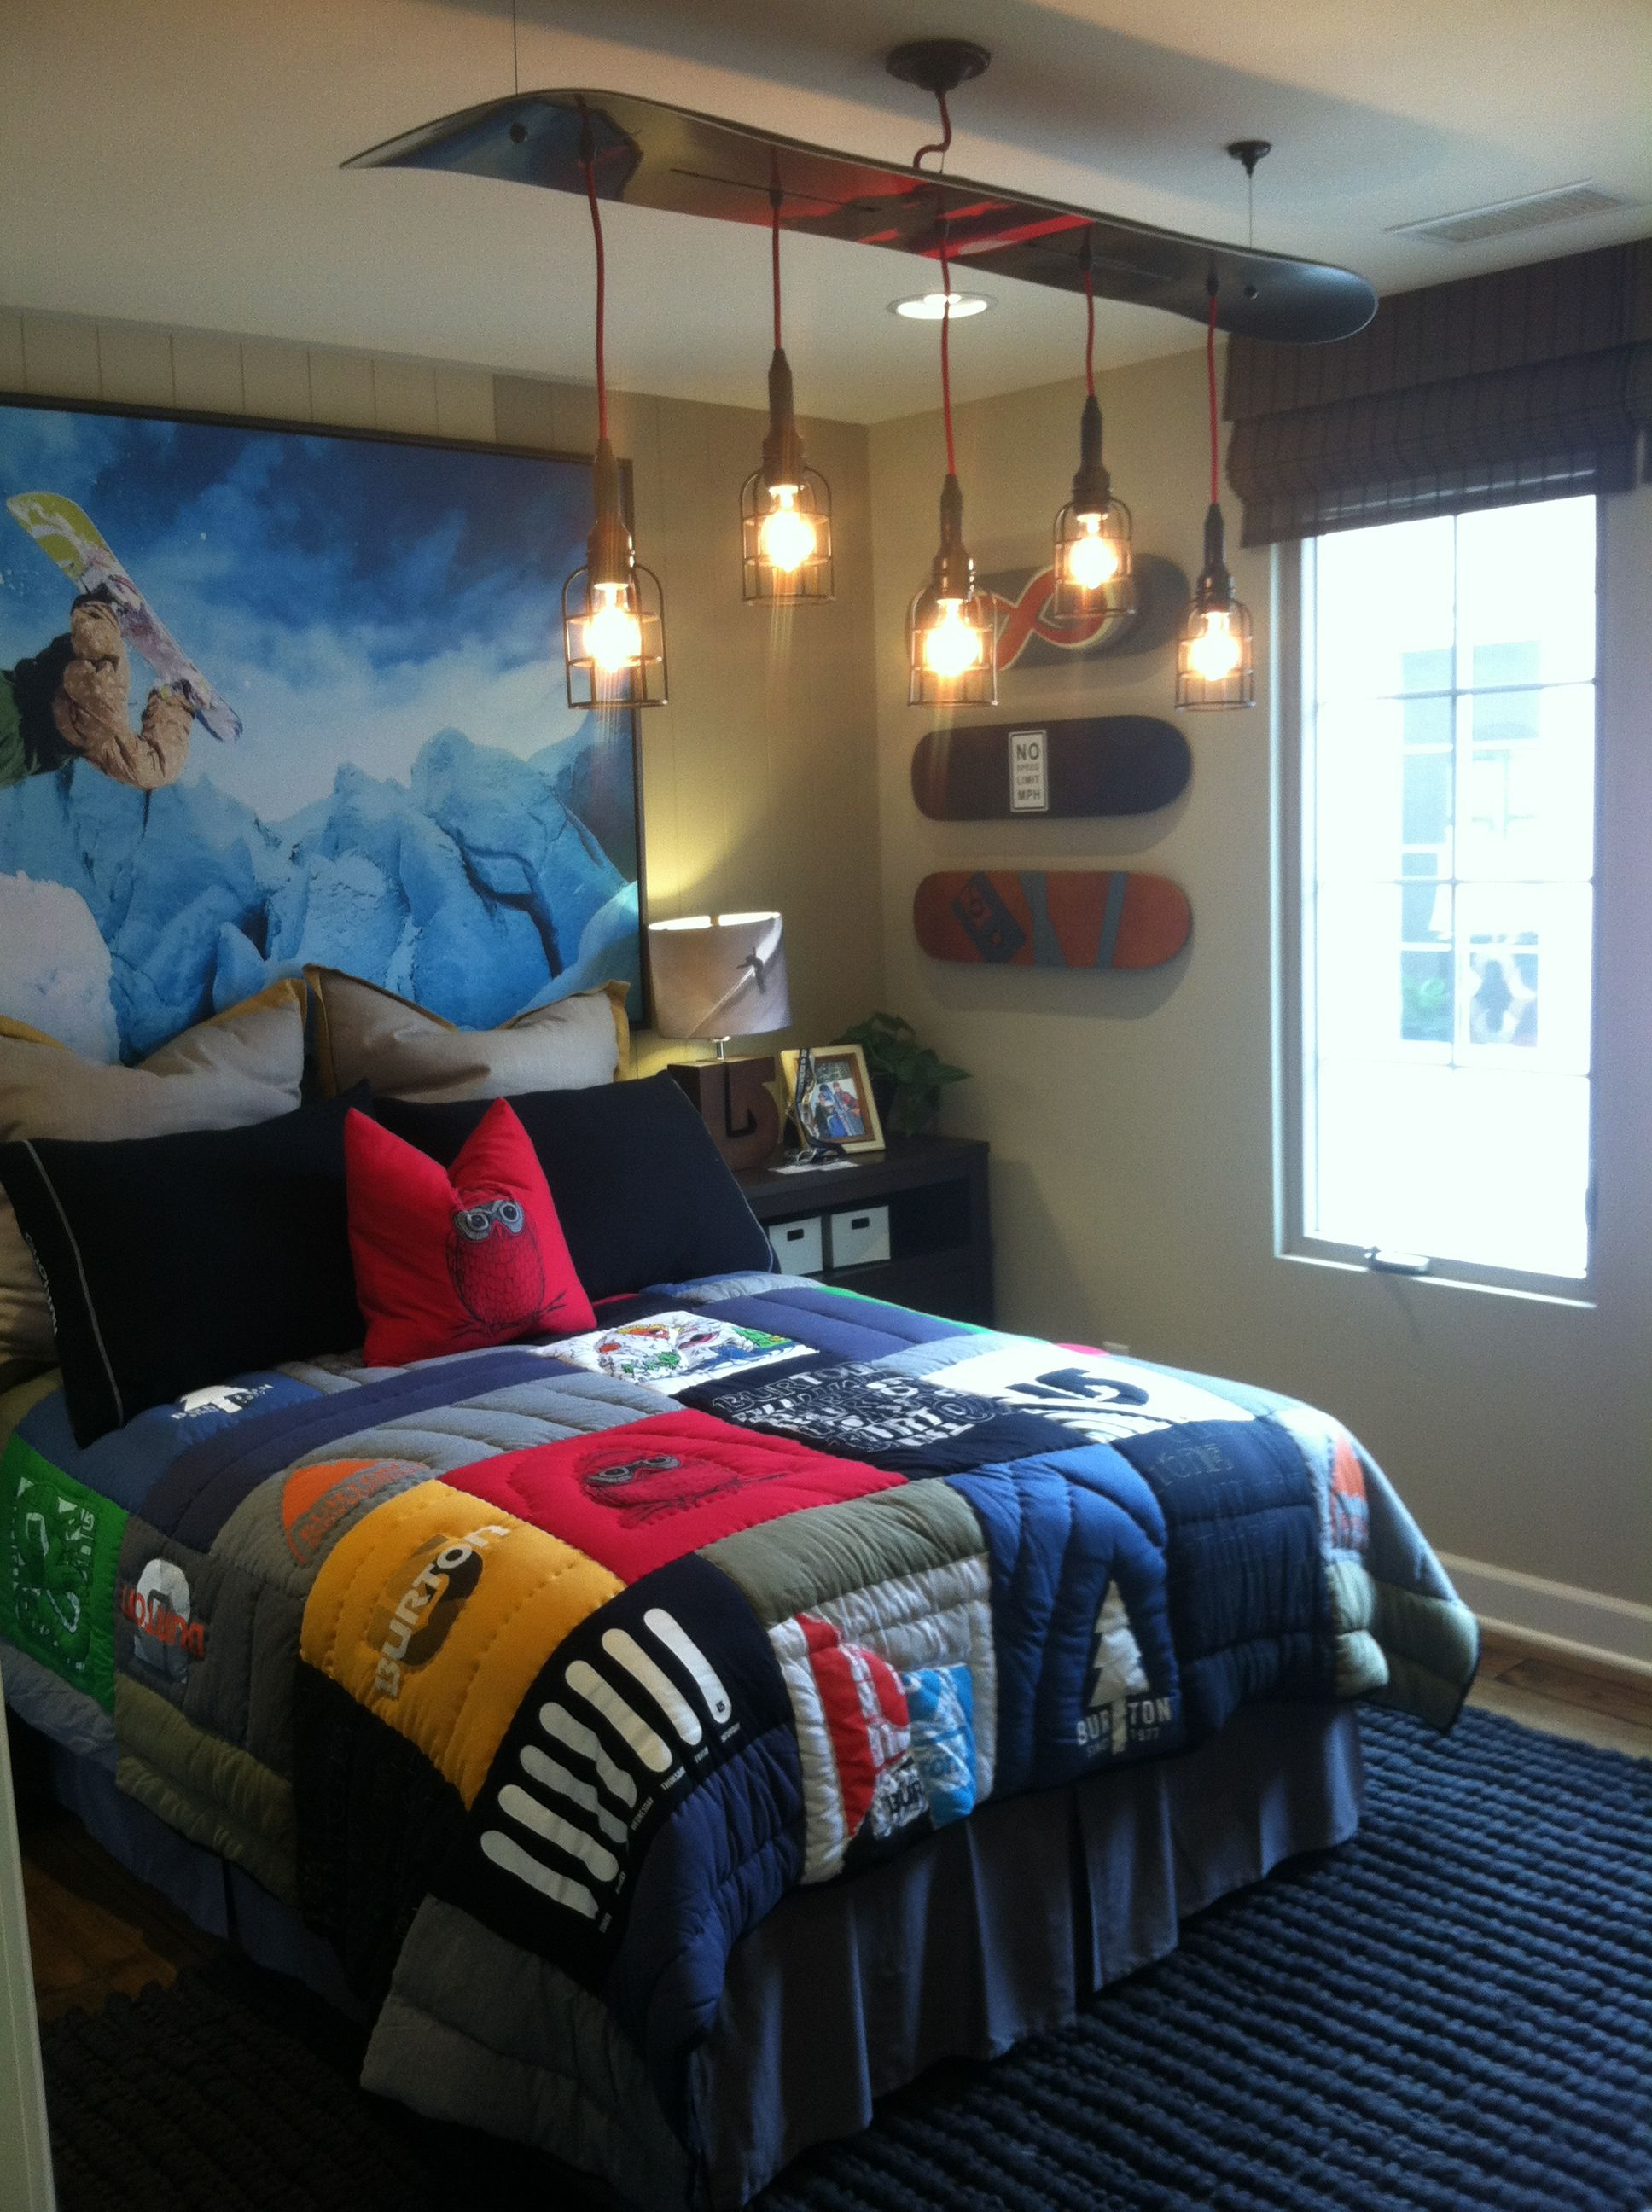 Awesome teen boys room irvineliving irvineinvesting - Teen boy room ideas ...